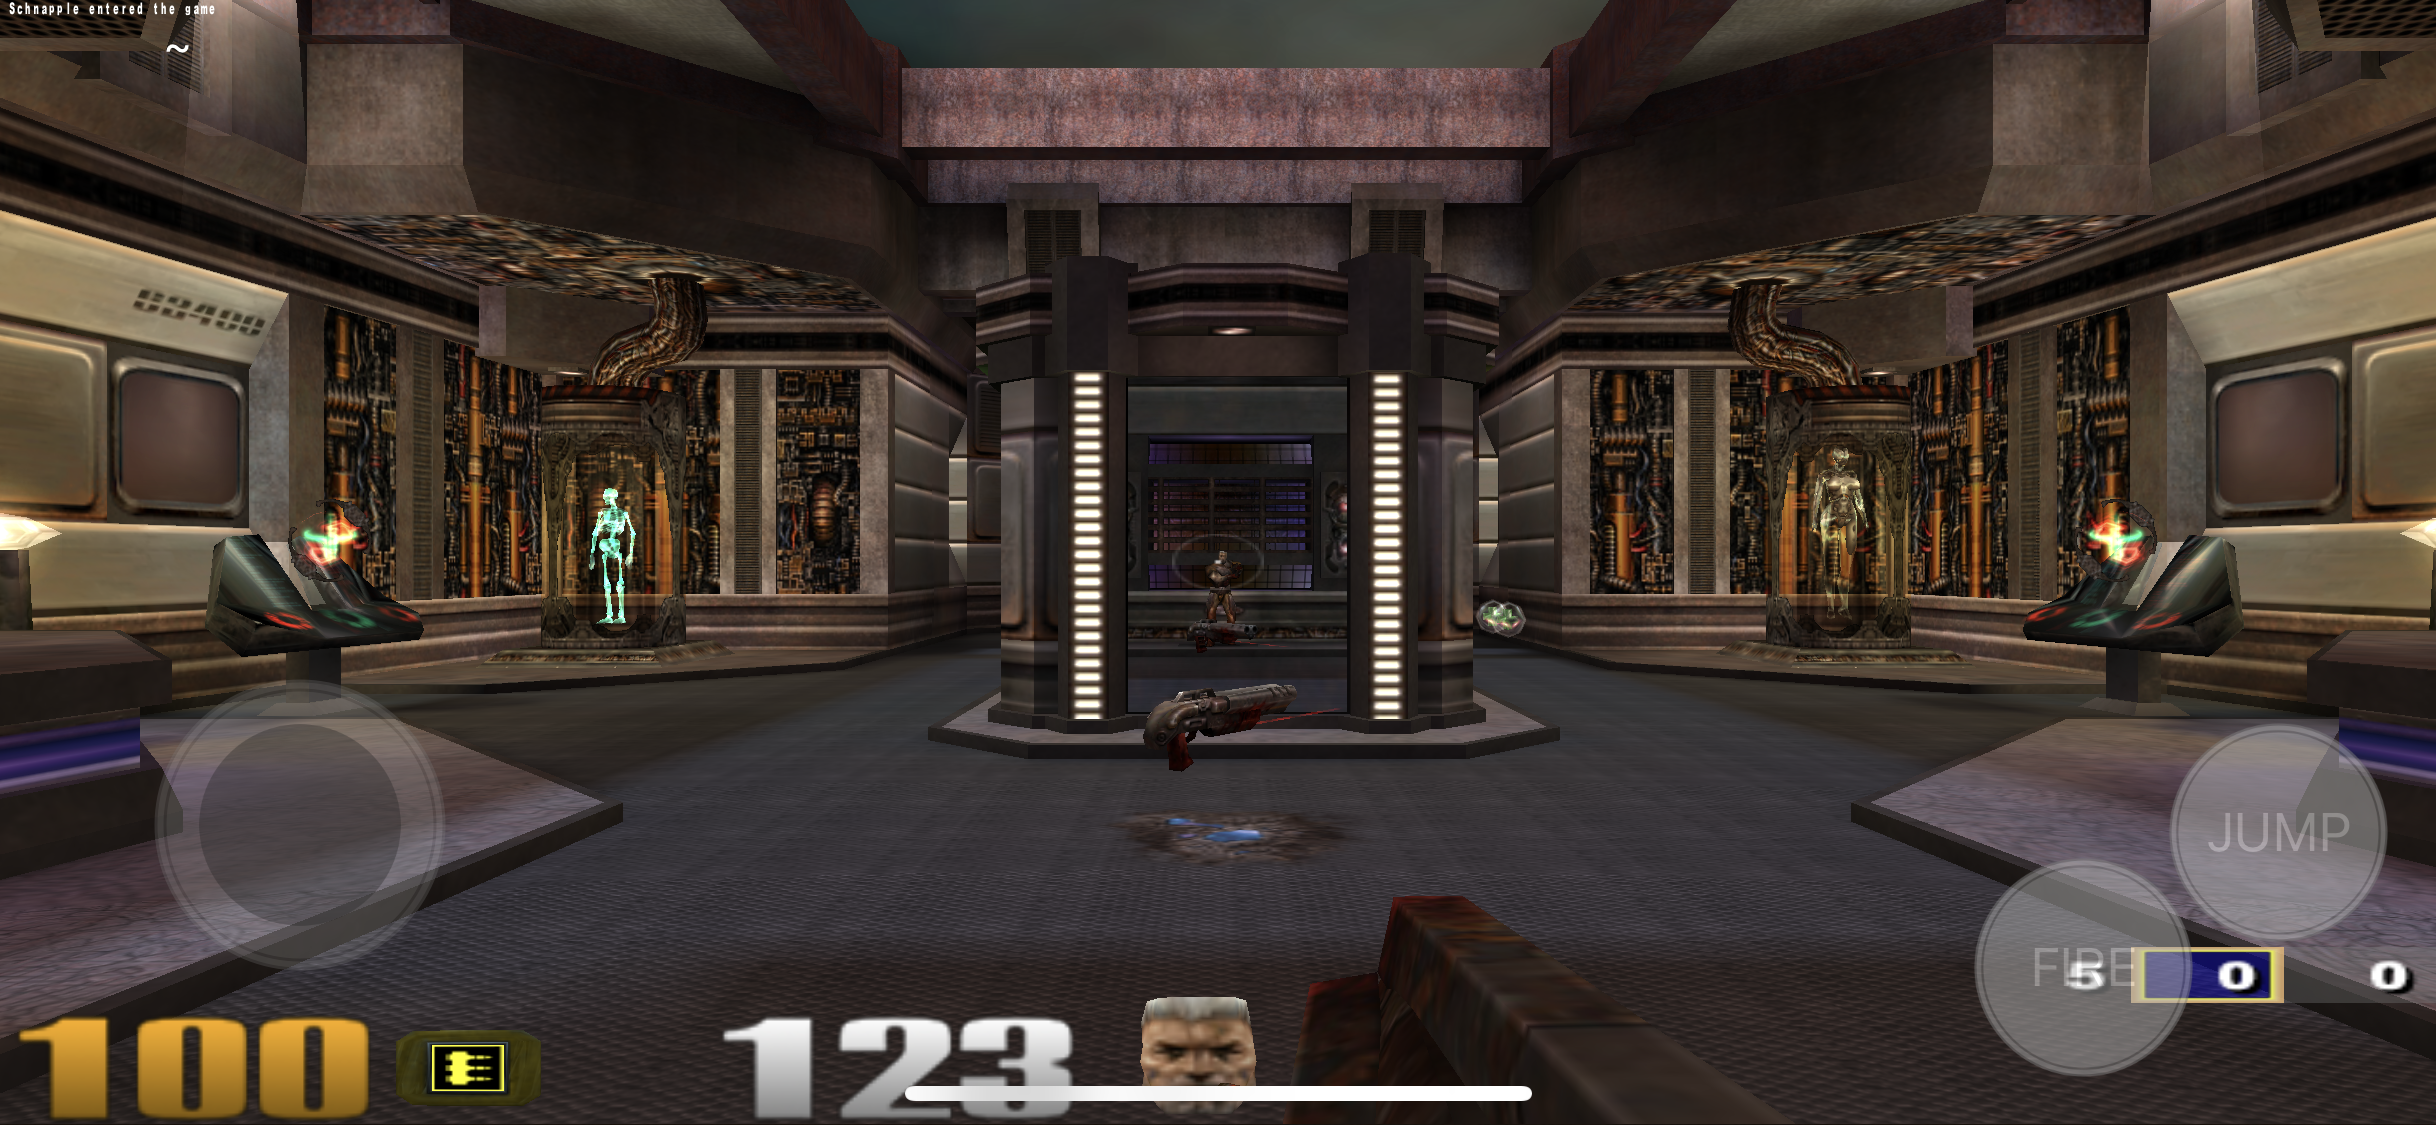 Quake III Arena for iOS and tvOS for Apple TV – schnapple com